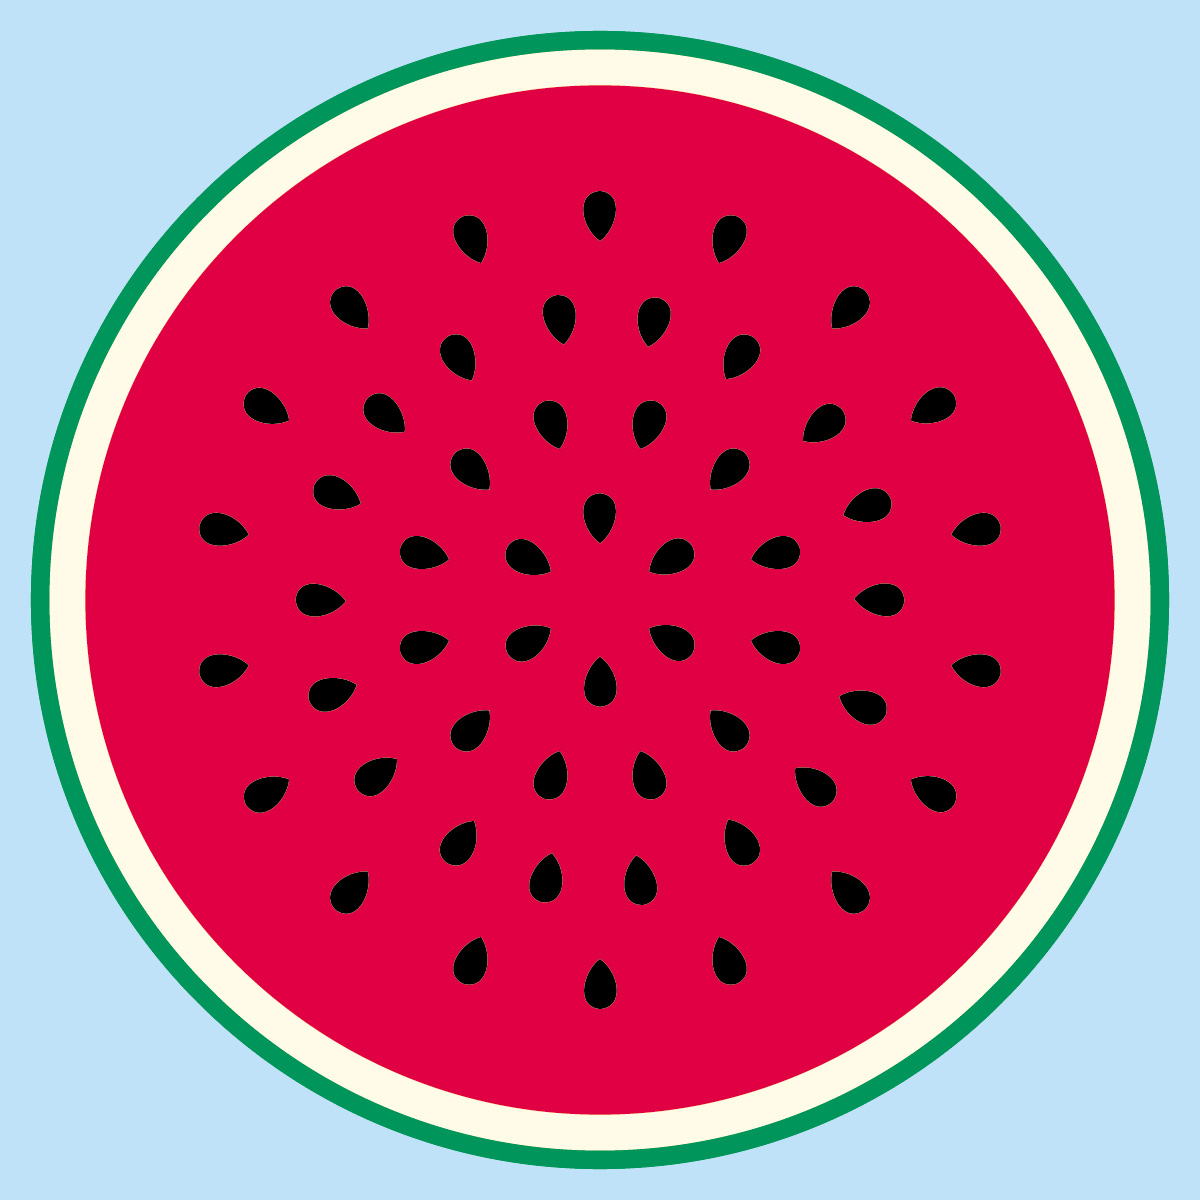 Watermelon Seed Clipart.